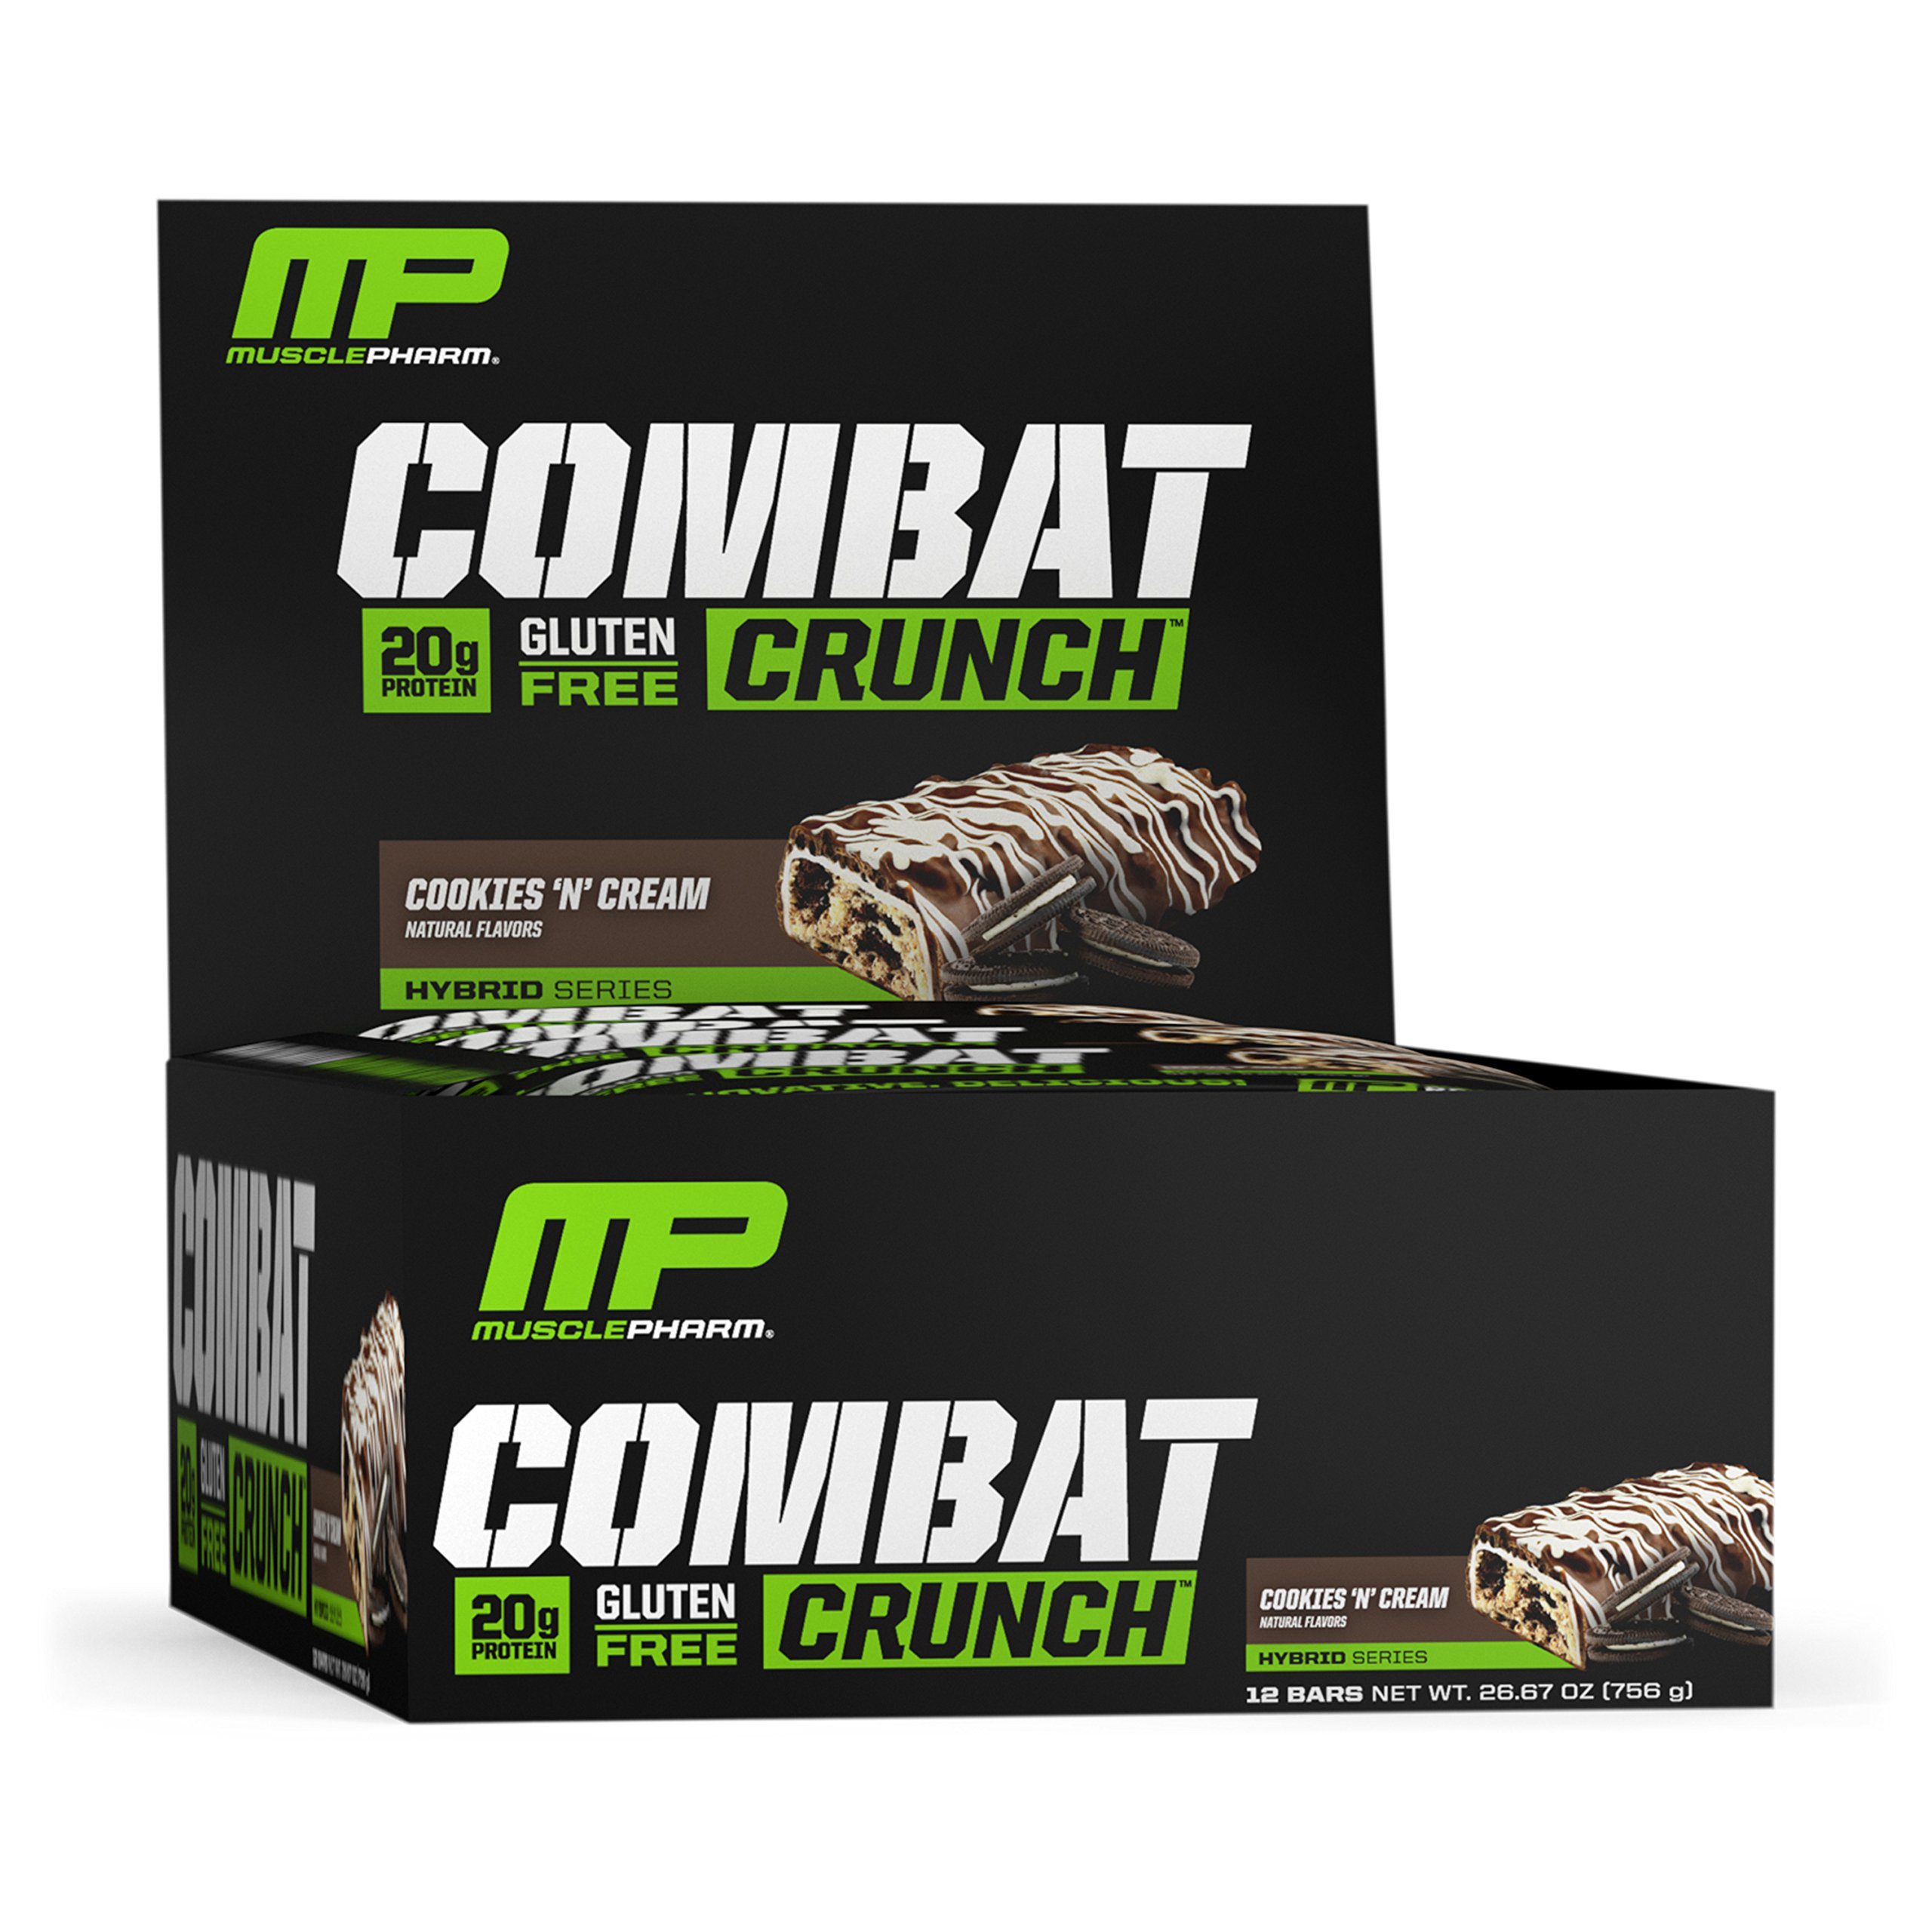 MusclePharm Combat Crunch Protein Bar, Multi-Layered Baked Bar, 20g Protein, Low Sugar, Low Carb, Gluten Free, Cookies 'N' Cream, 12 Bars